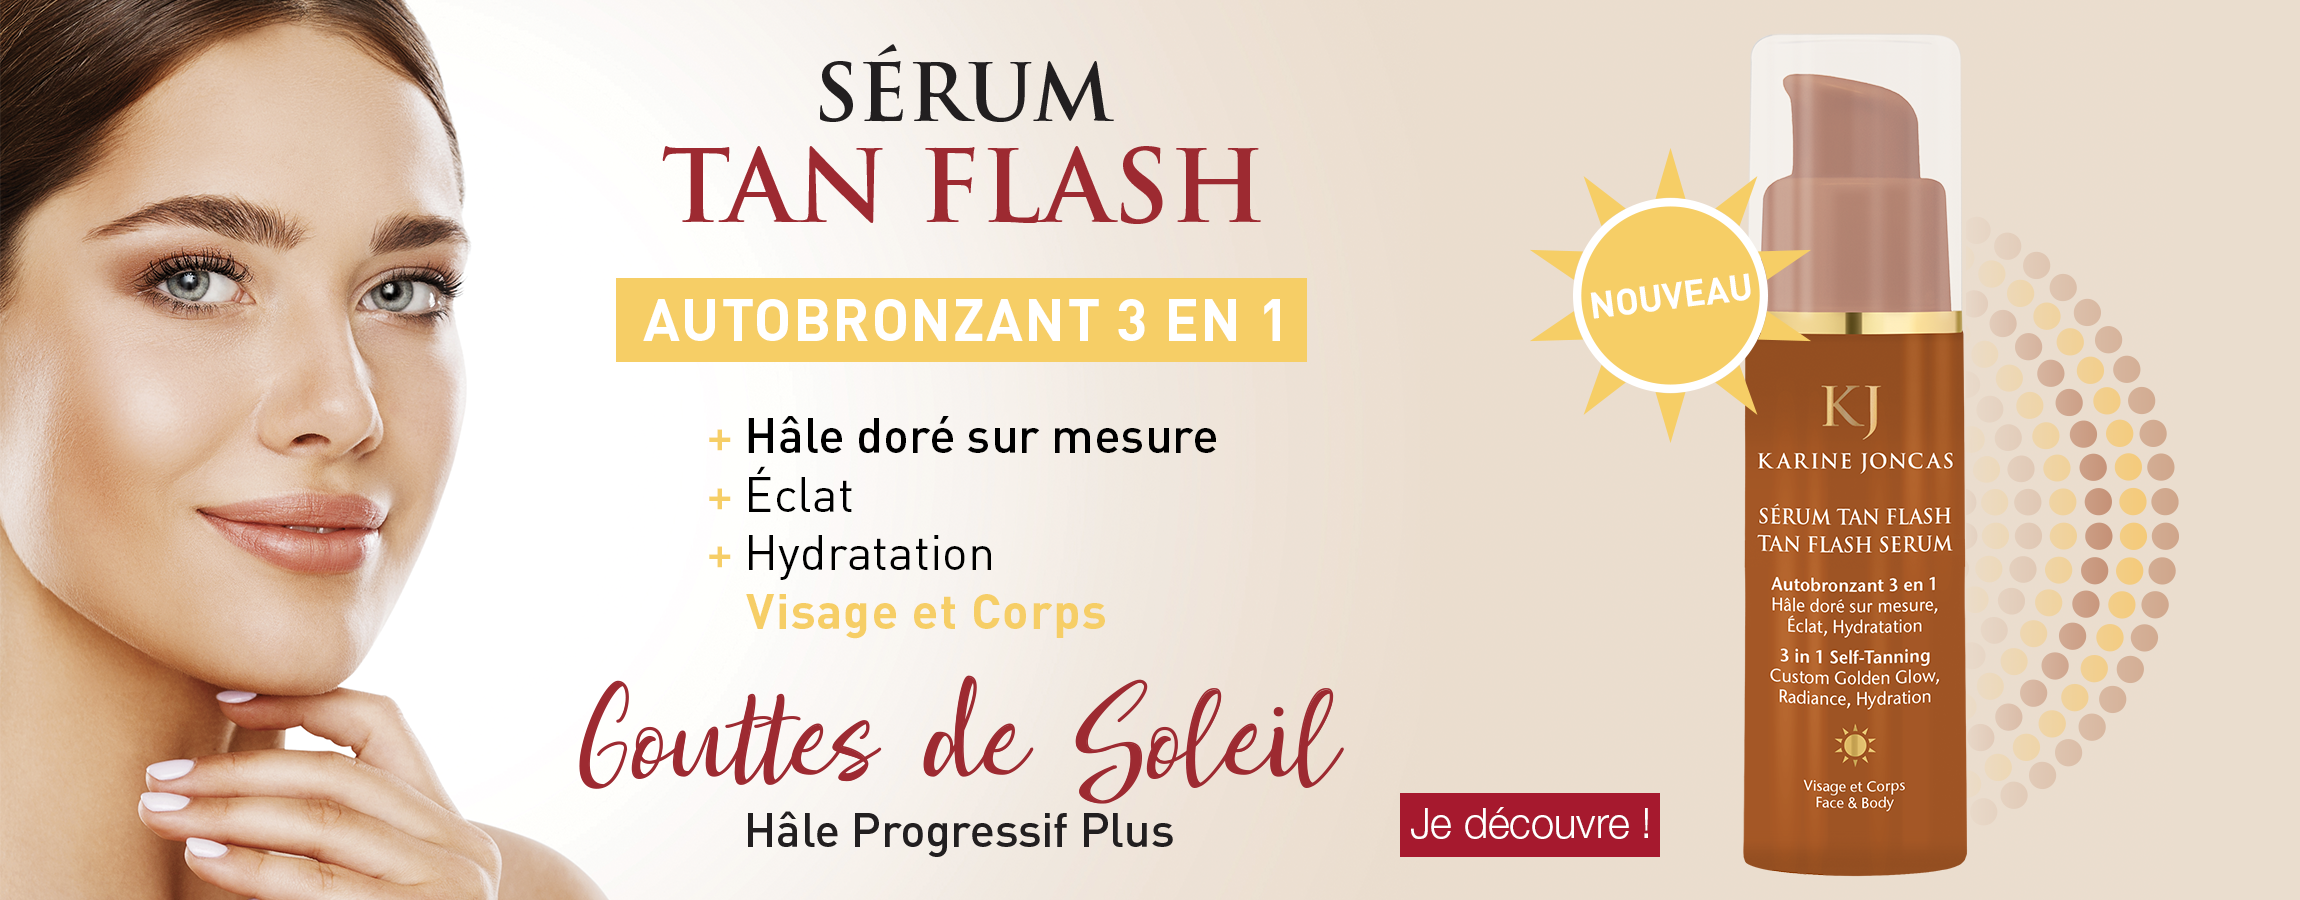 Sérum Tan Flash